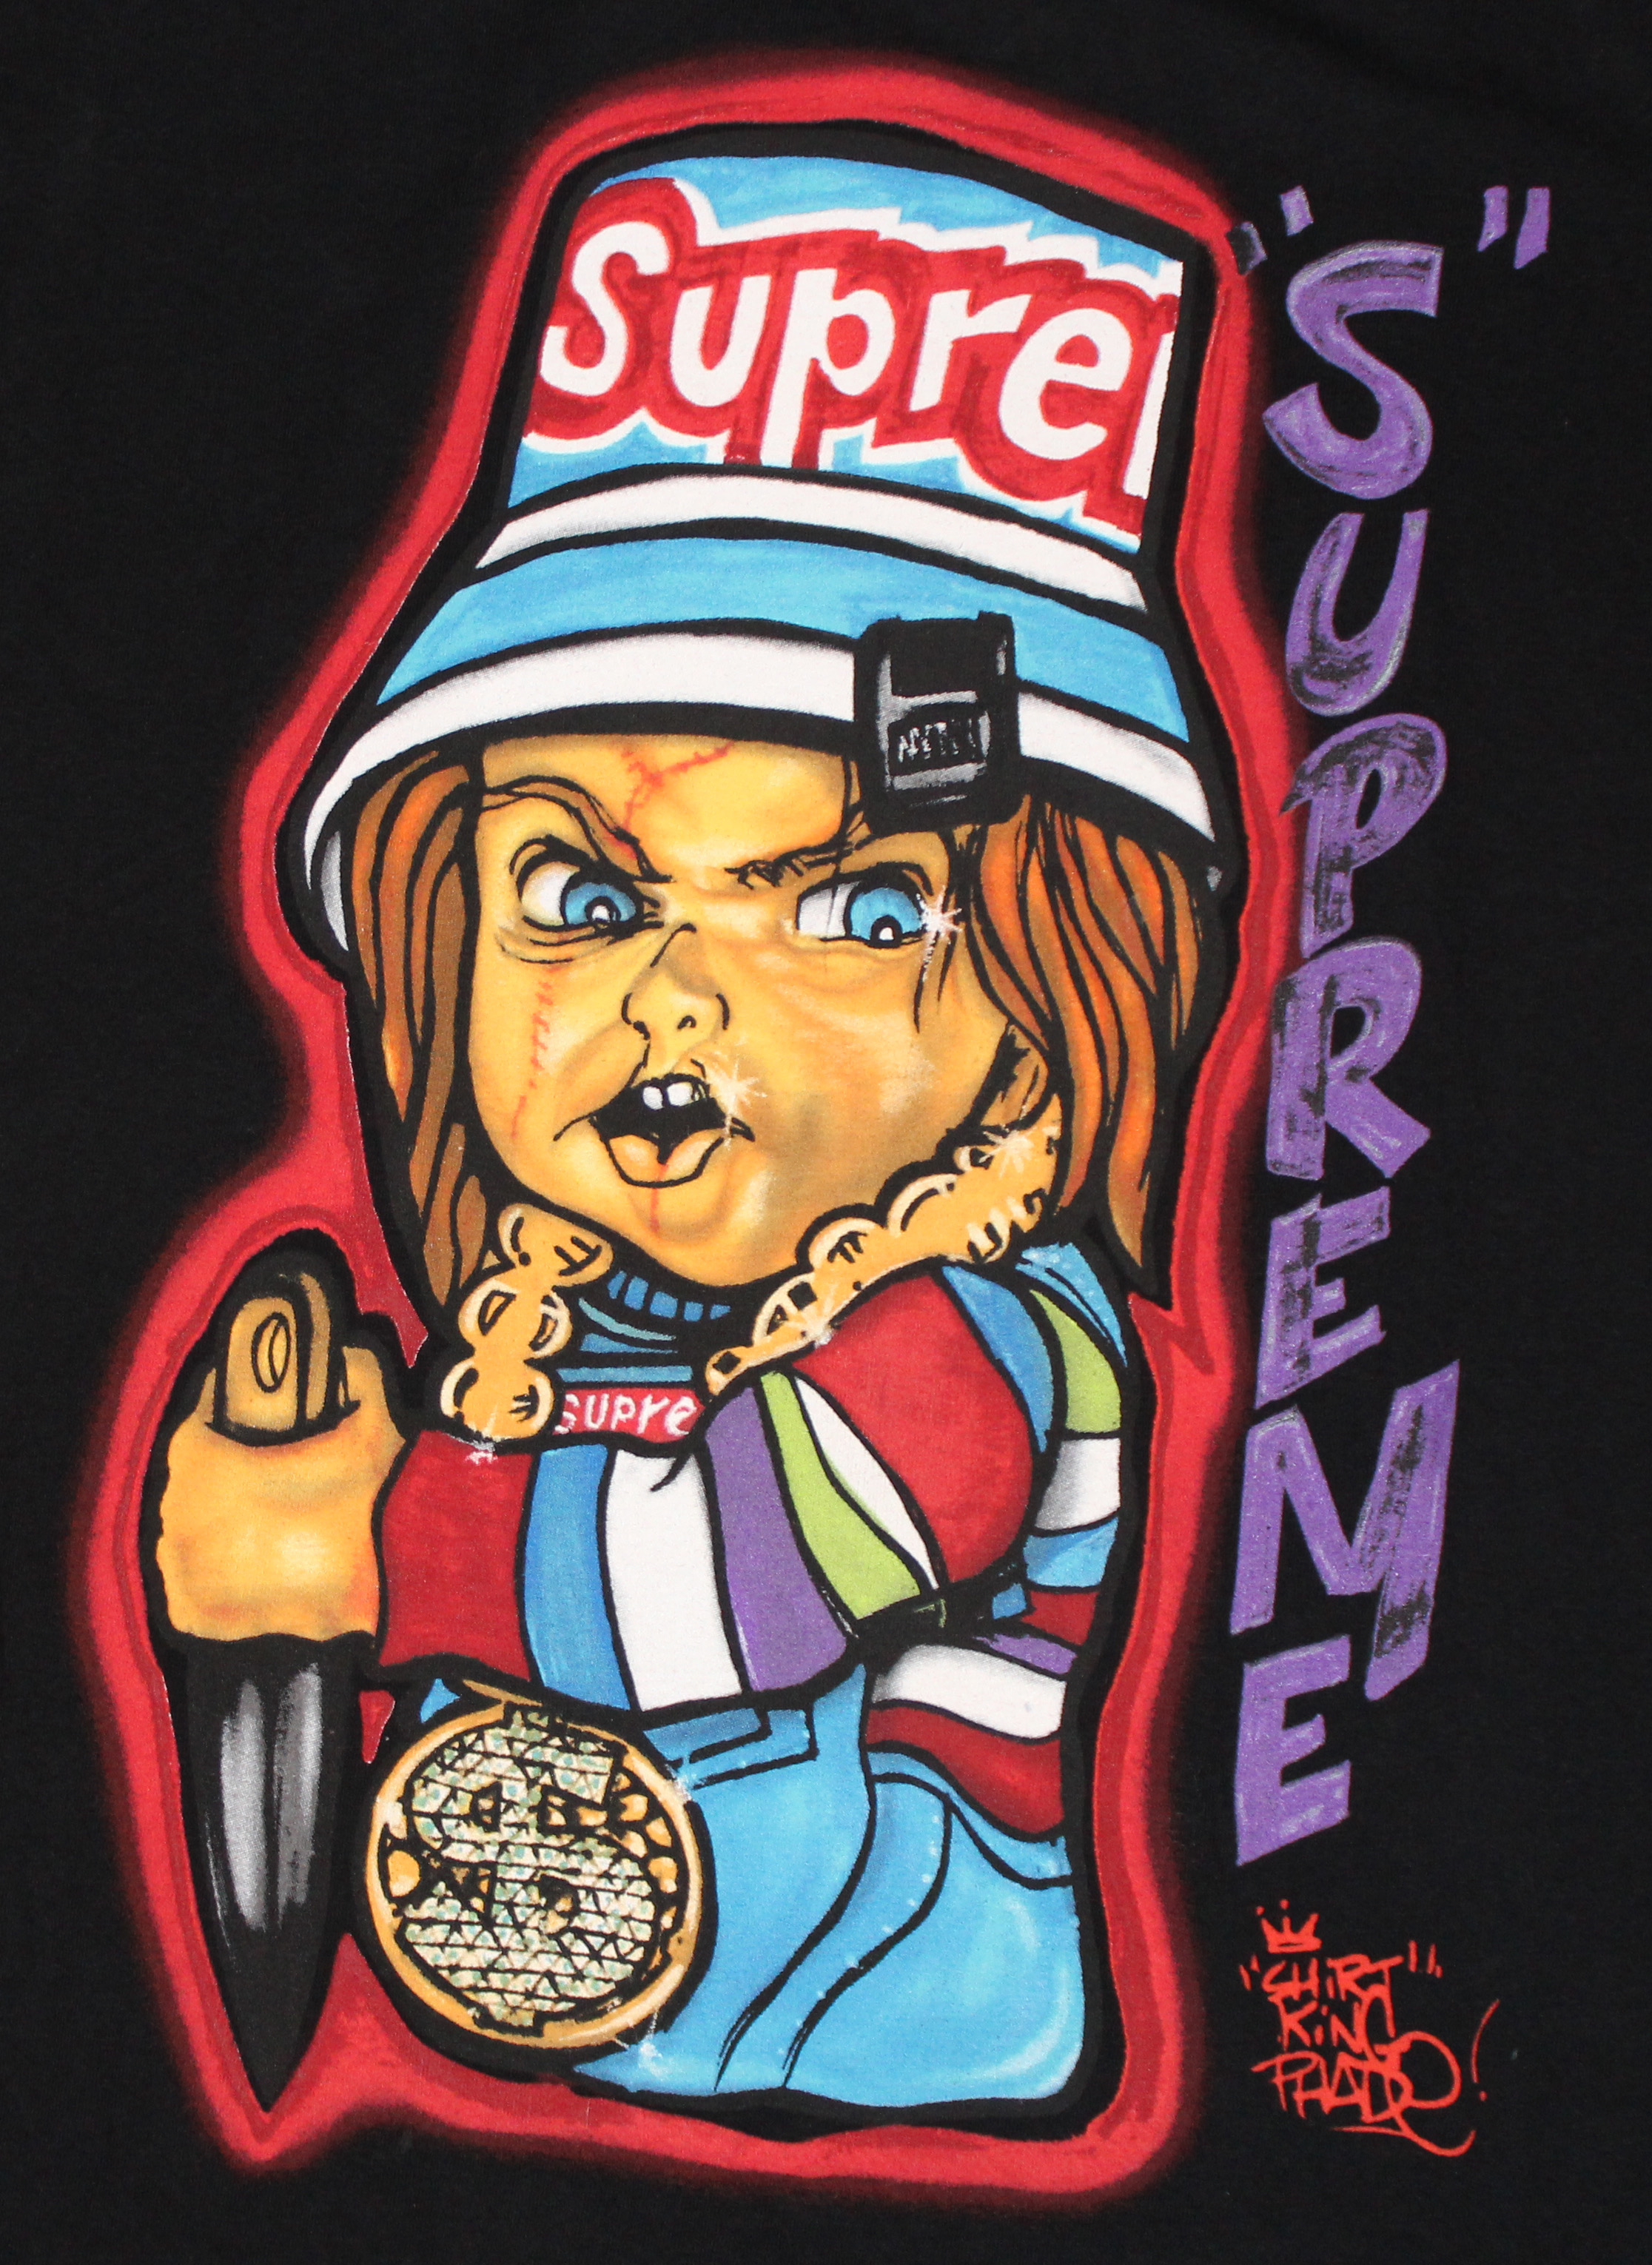 Supreme Chucky X Shirt Kings Black Graffiti T Shirt S/S 14 (Size L